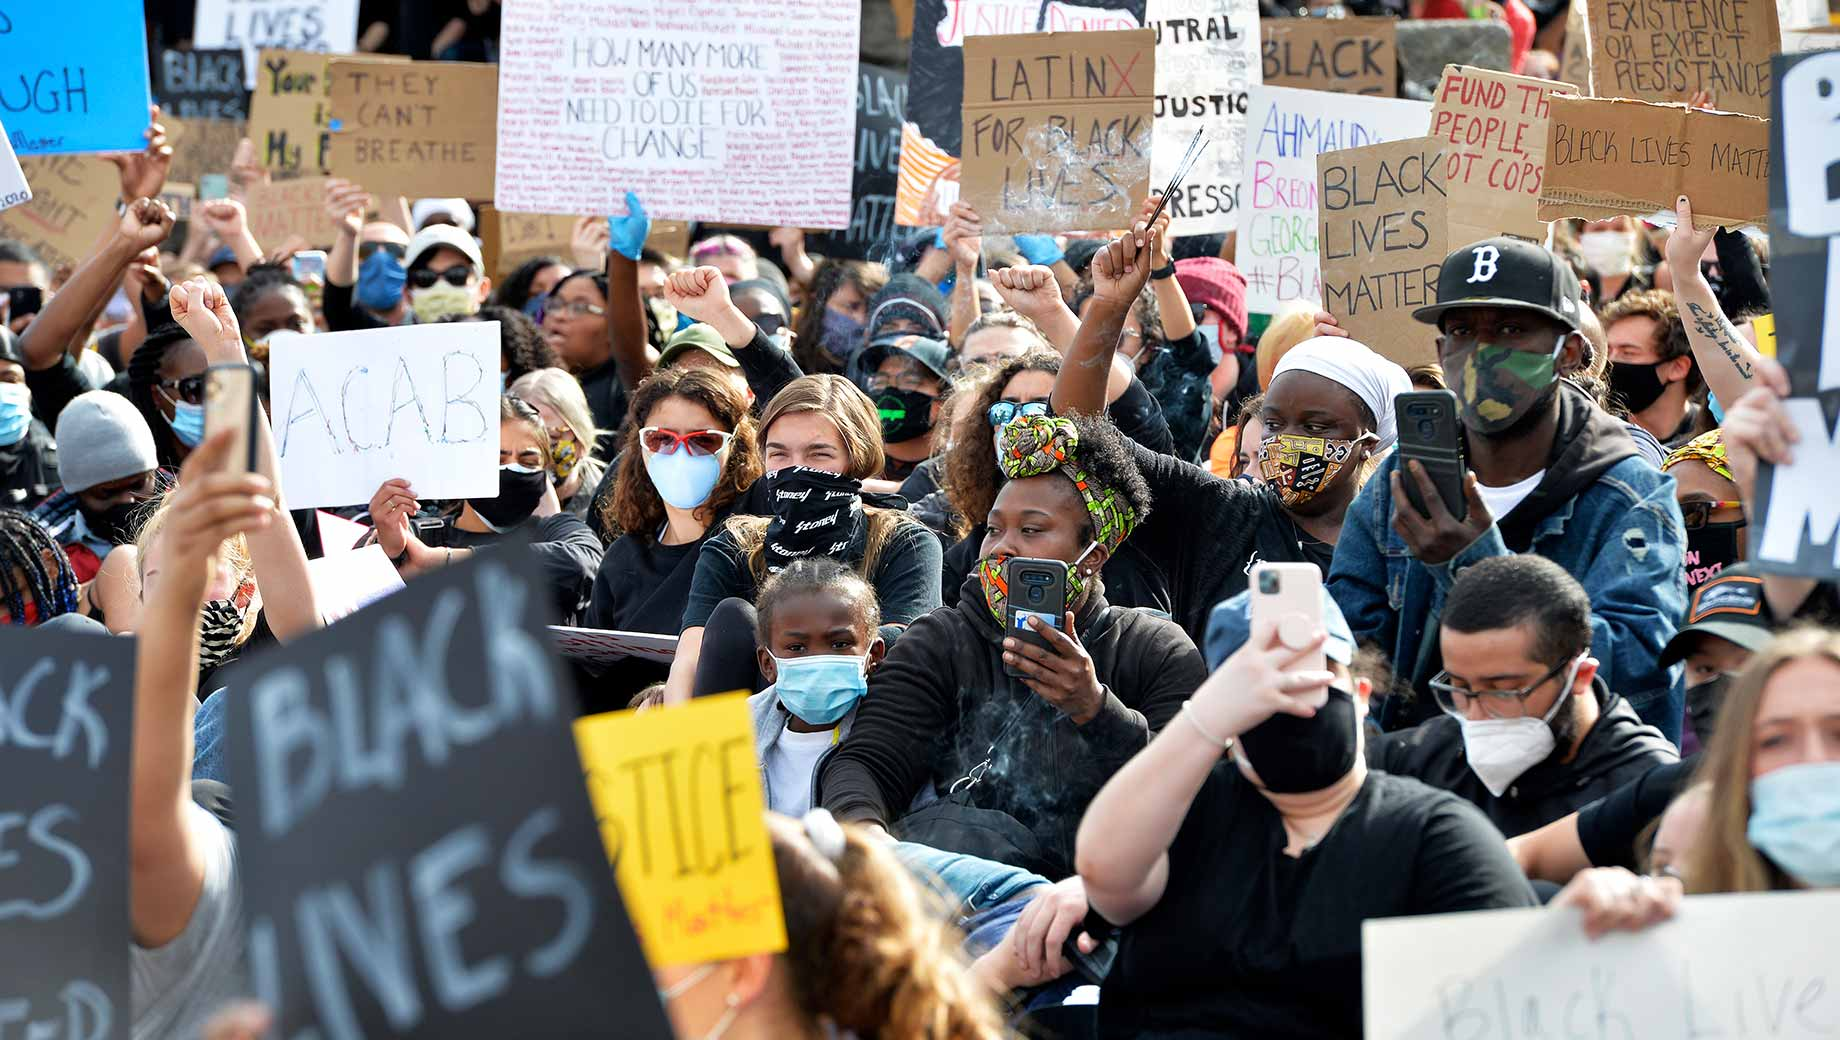 More in U.S. Believe Protest Actions Can Aid Black Adults